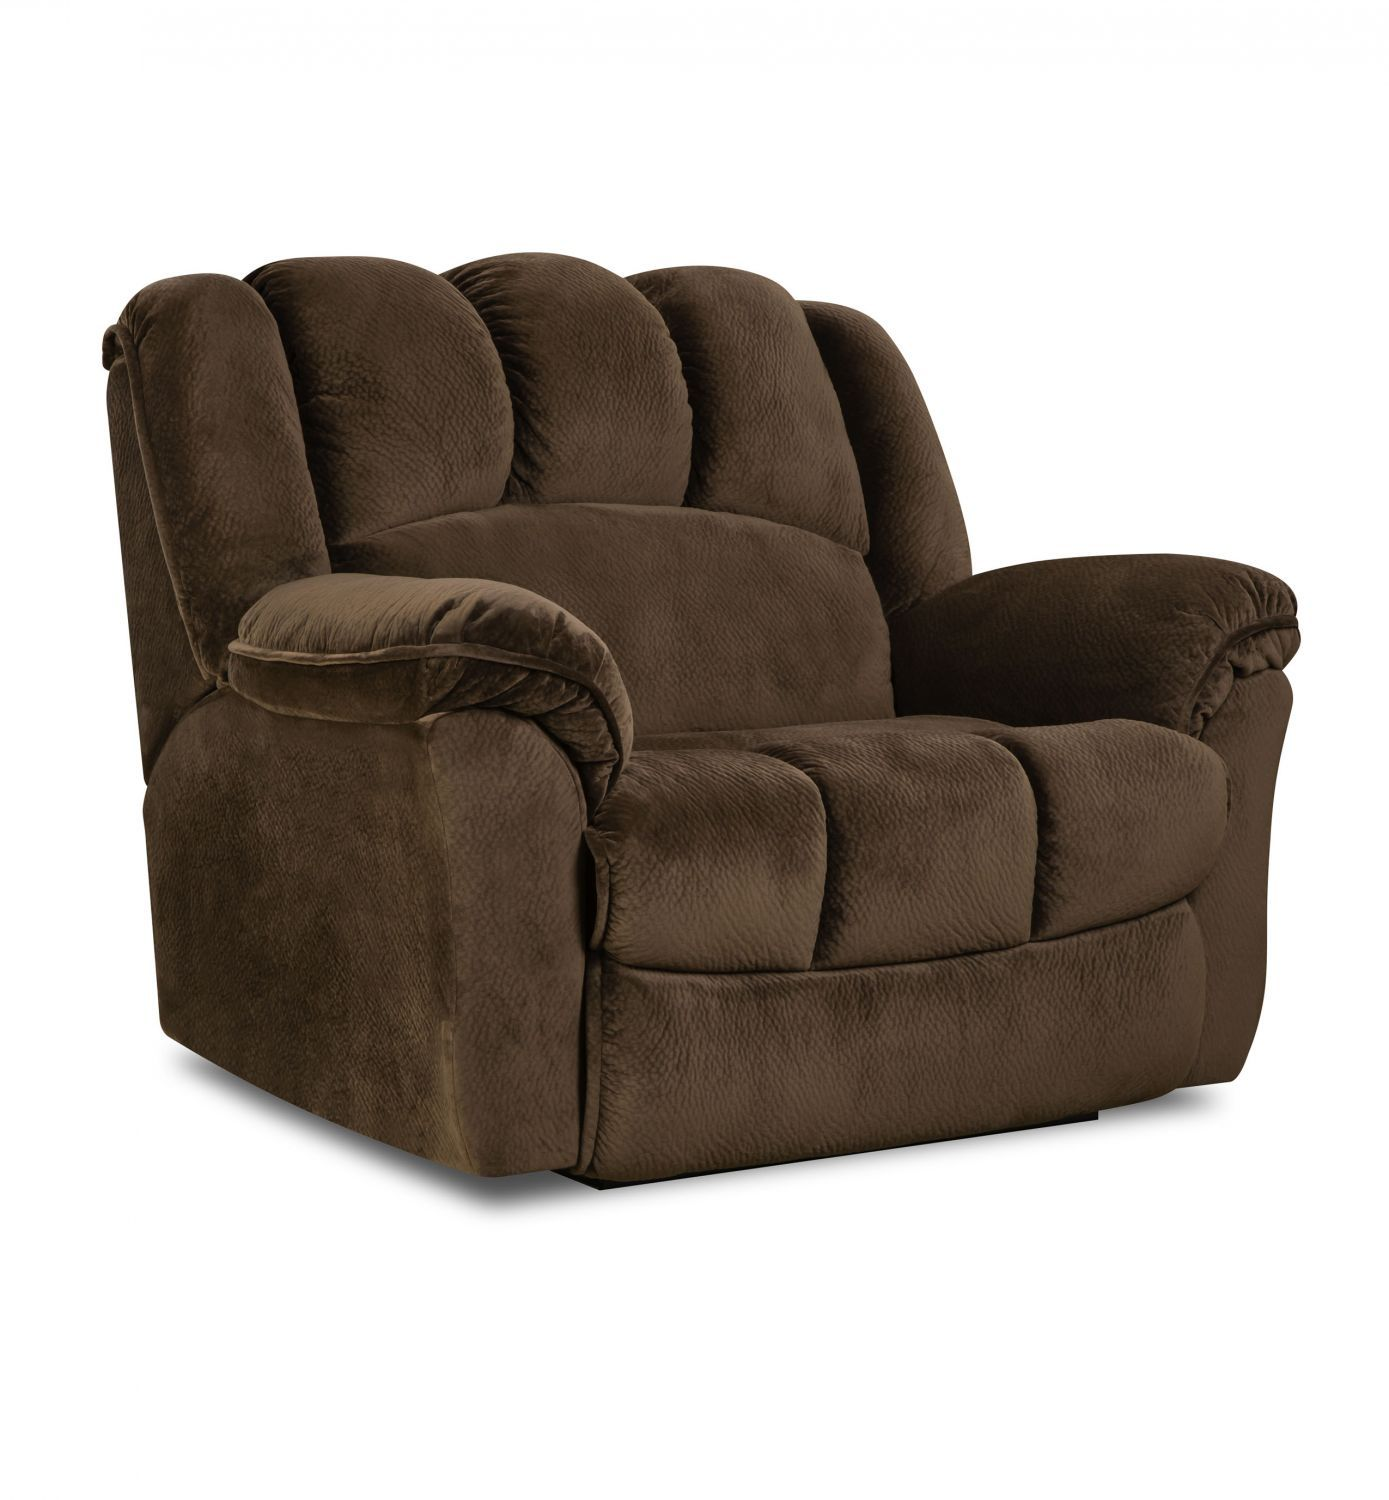 Cuddle Up In Oversized Snuggler Recliner And Enjoy A Movie 598